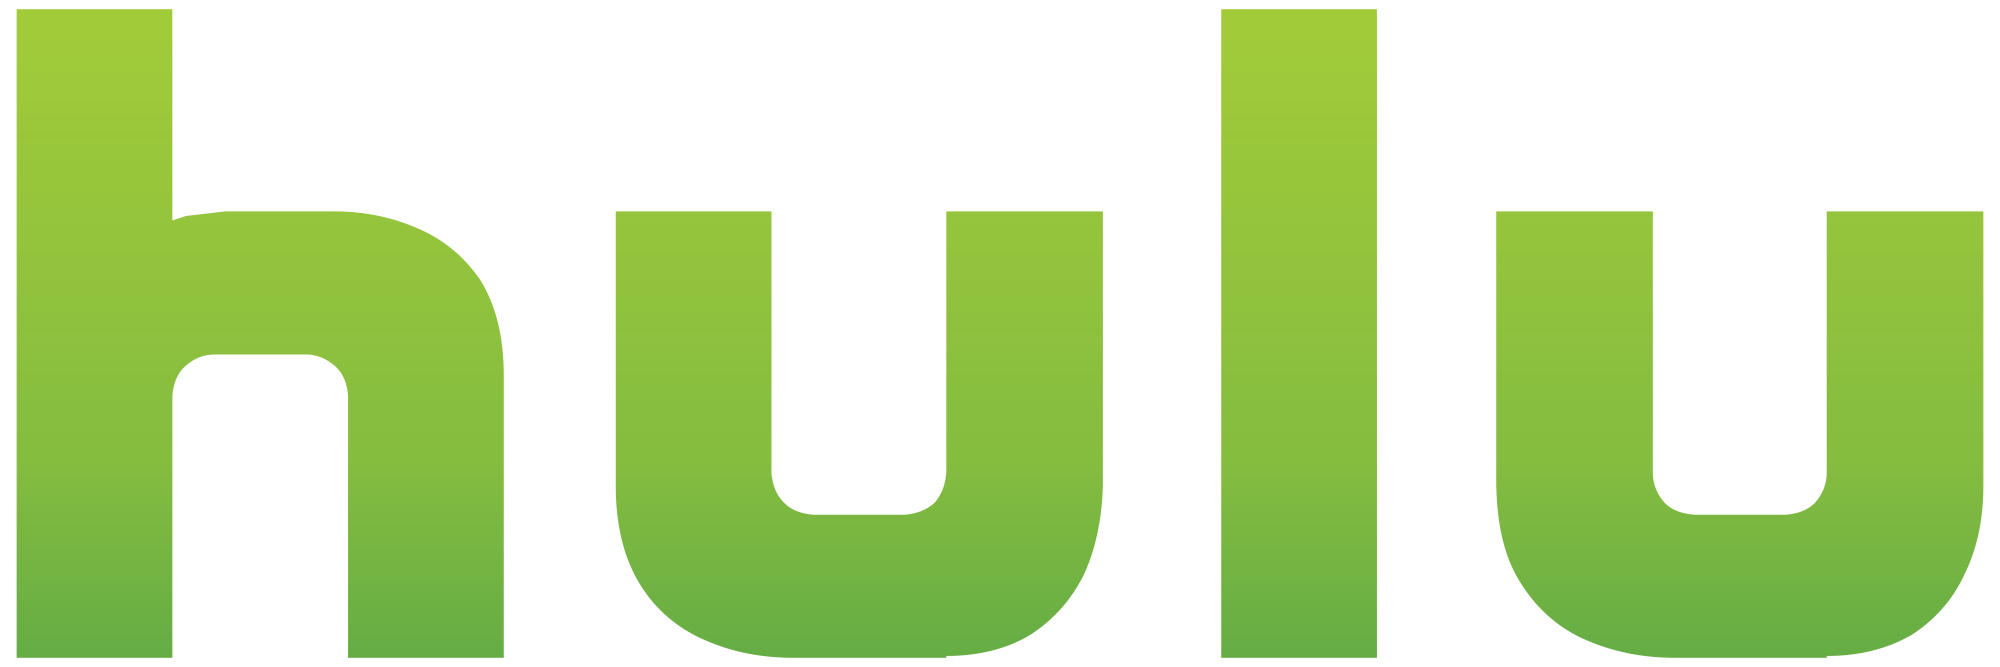 Hulu Announces Premiere Dates for 'East Los High,' 'Casual,' & 'Difficult People'